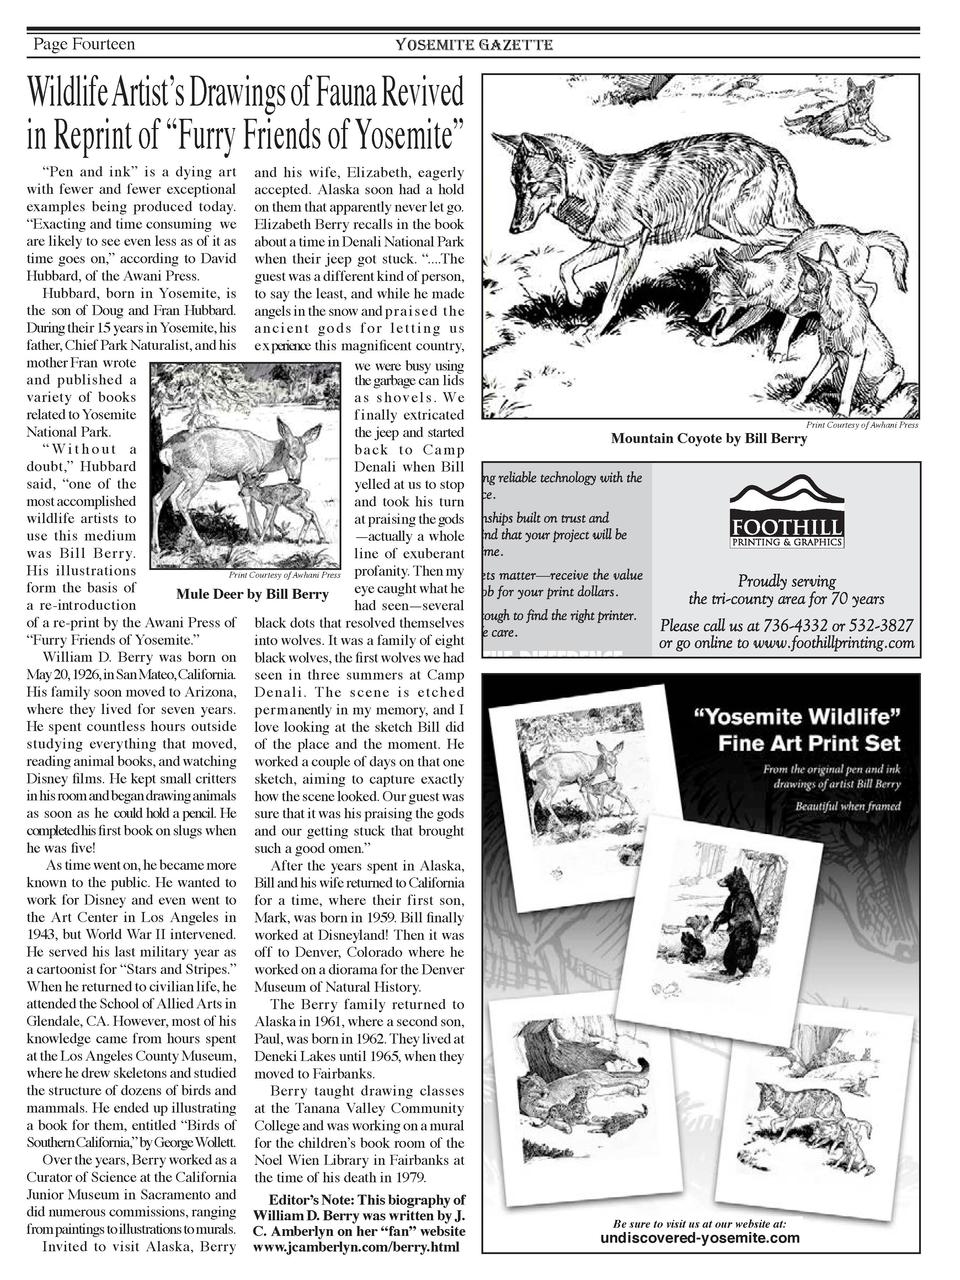 Page Fourteen  YOSEMITE GAZETTE  Wildlife Artist   s Drawings of Fauna Revived in Reprint of    Furry Friends of Yosemite ...